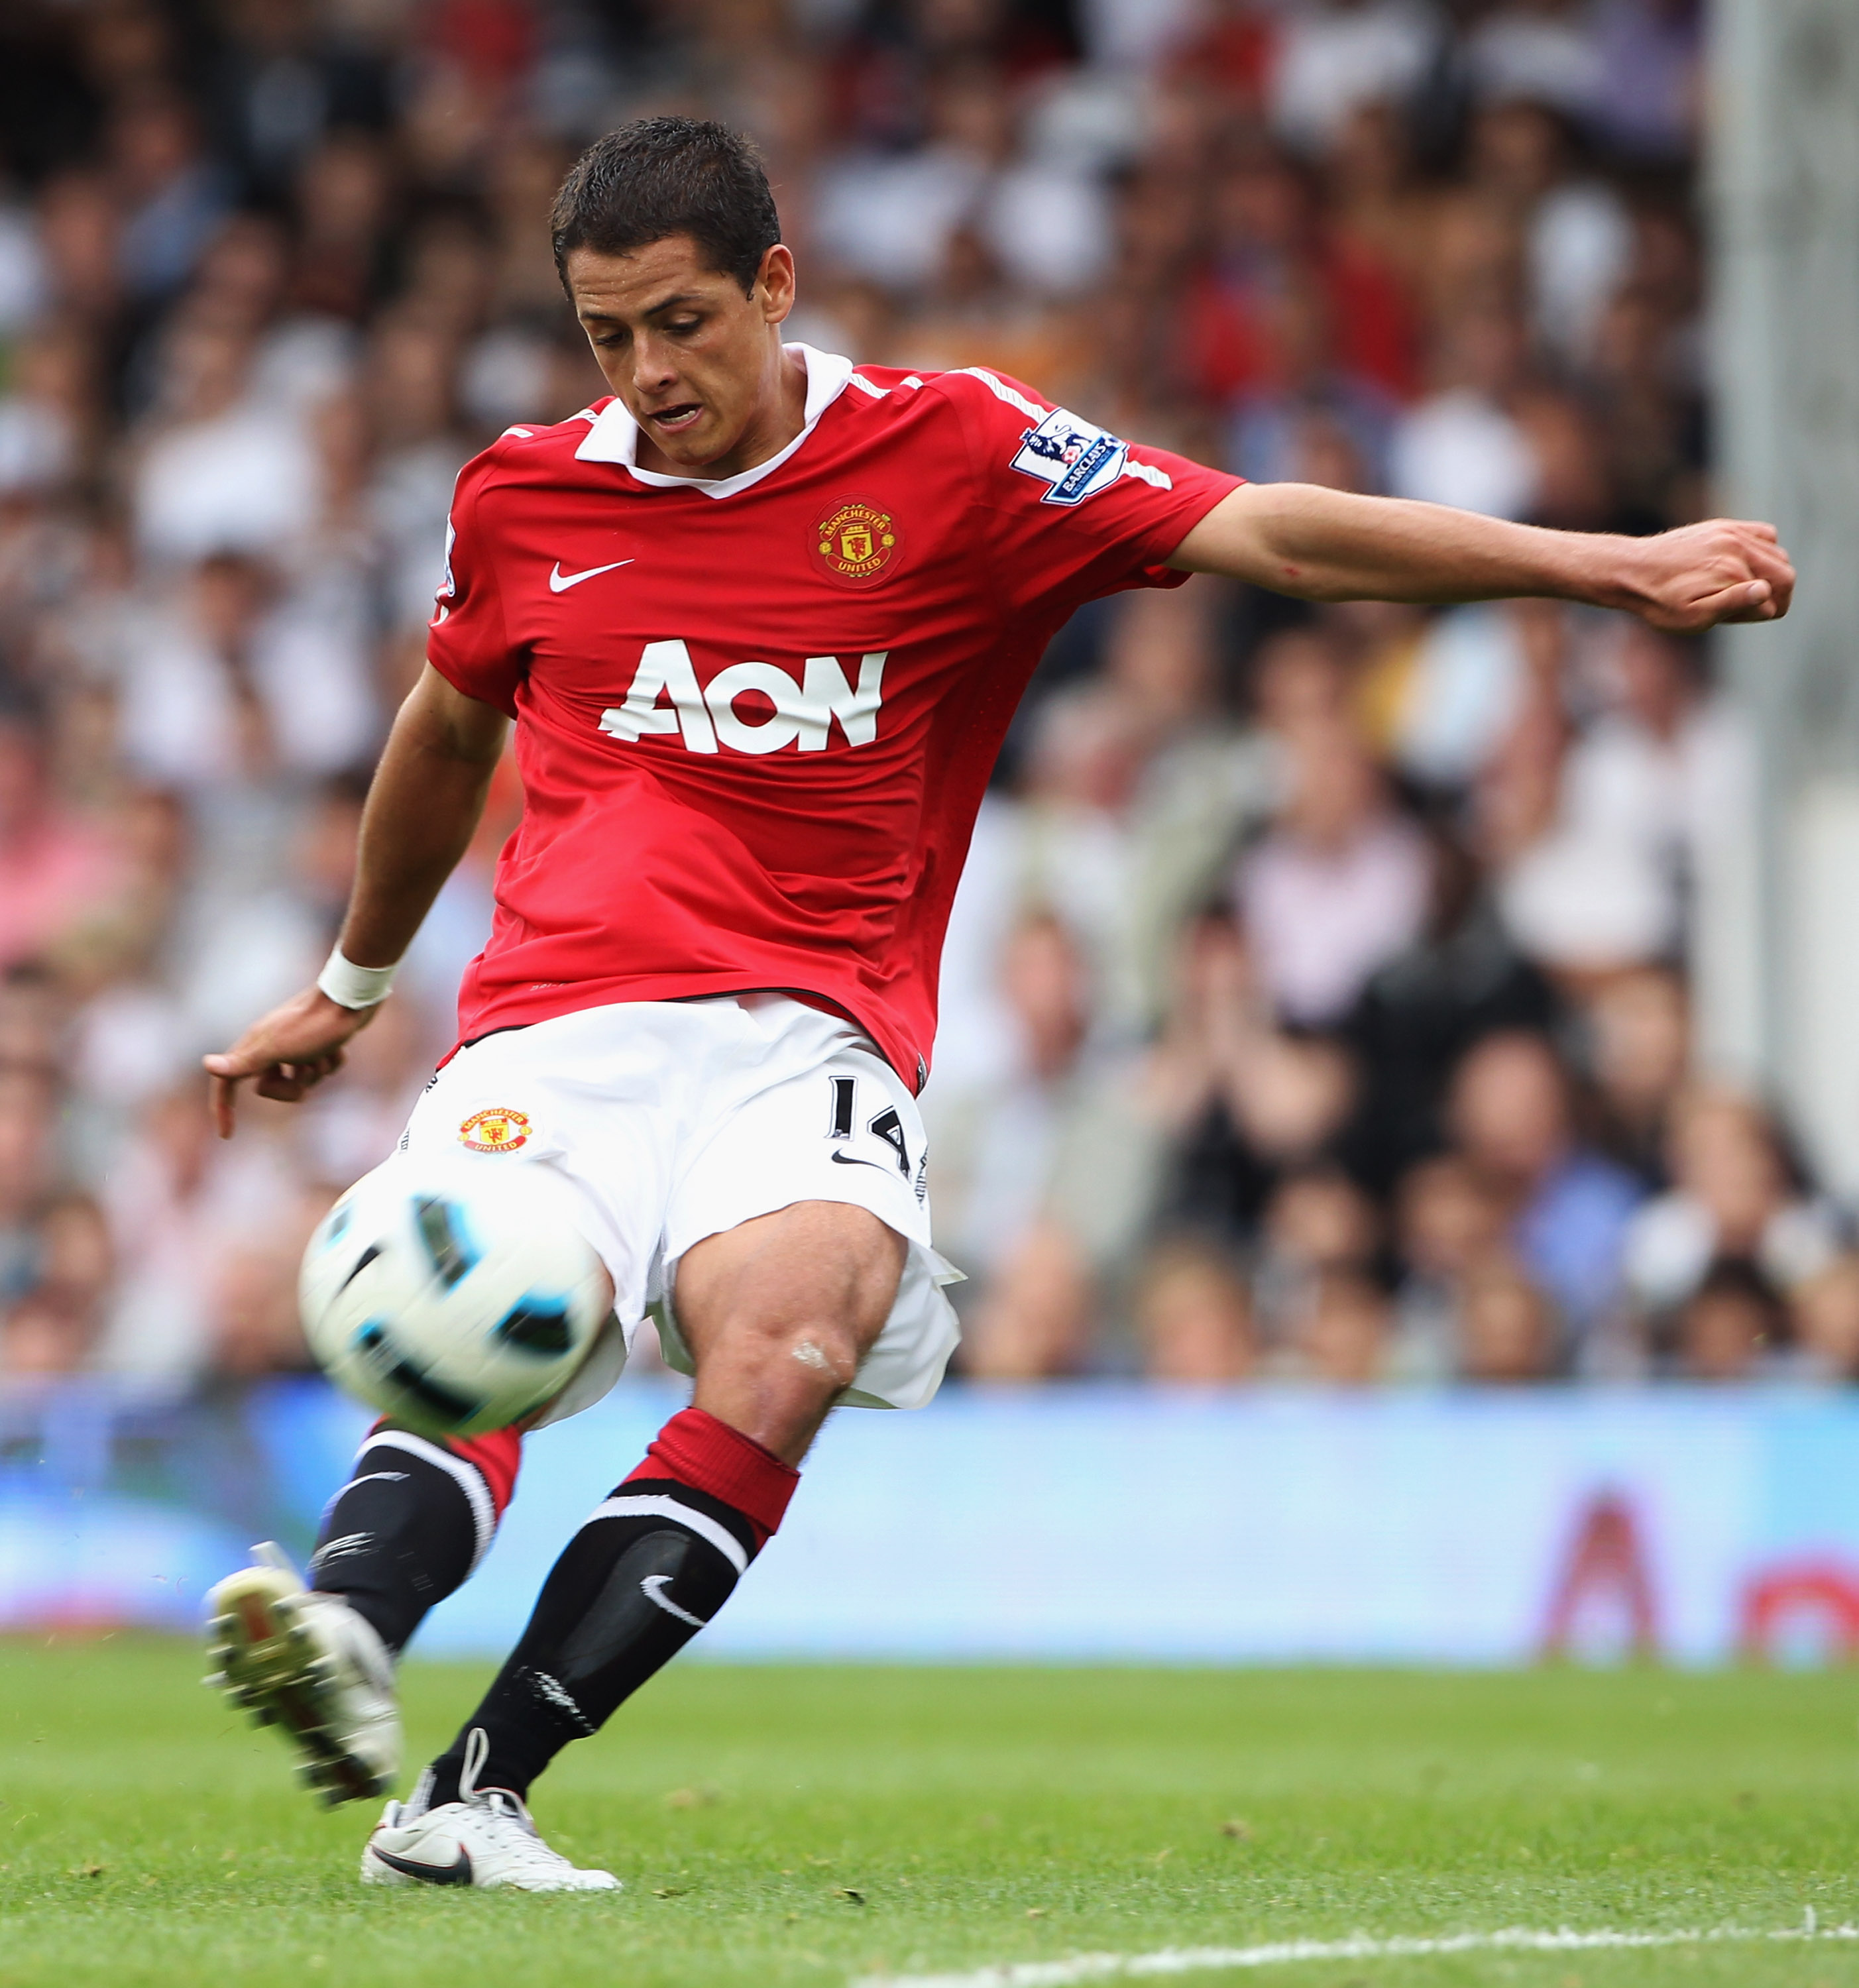 LONDON, ENGLAND - AUGUST 22:  Javier Hernández of Manchester United in action during the Barclays Premier League match between Fulham and Manchester United at Craven Cottage on August 22, 2010 in London, England.  (Photo by Phil Cole/Getty Images)